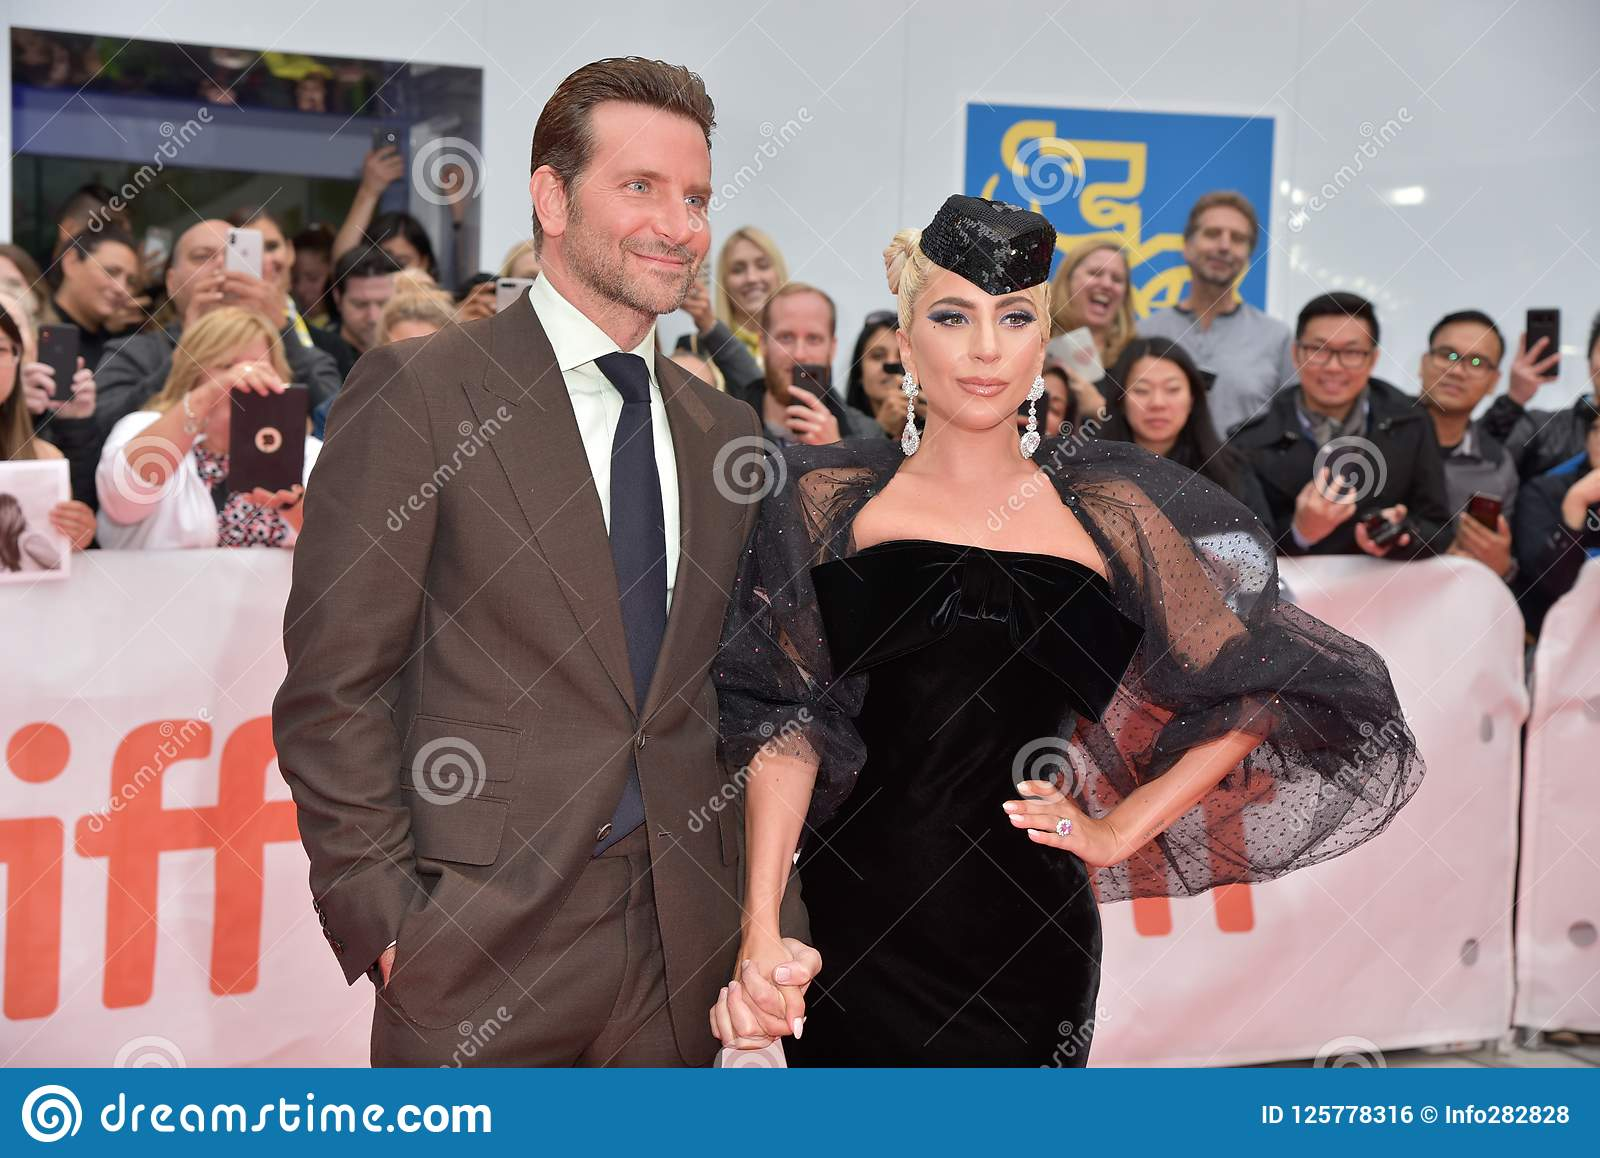 Lady Gaga and Bradley Cooper at premiere of A Star Is Born at Toronto International Film Festival 2018